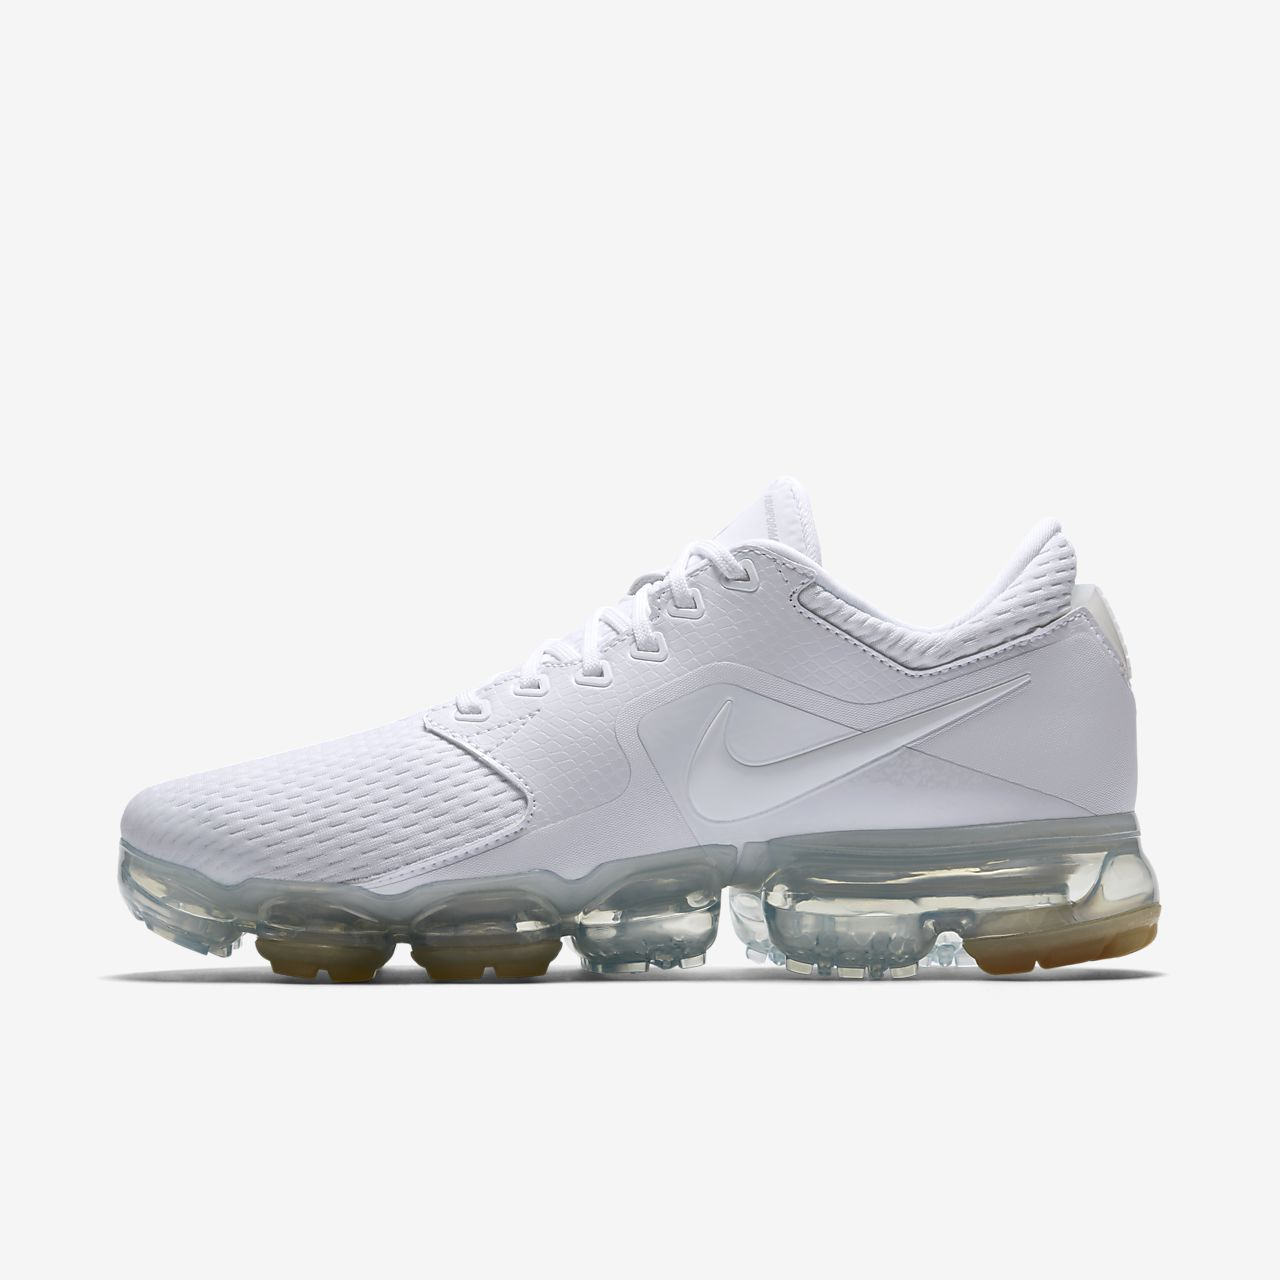 Nike Air Vapormax Women's Running Shoes AH9045-101 Triple White